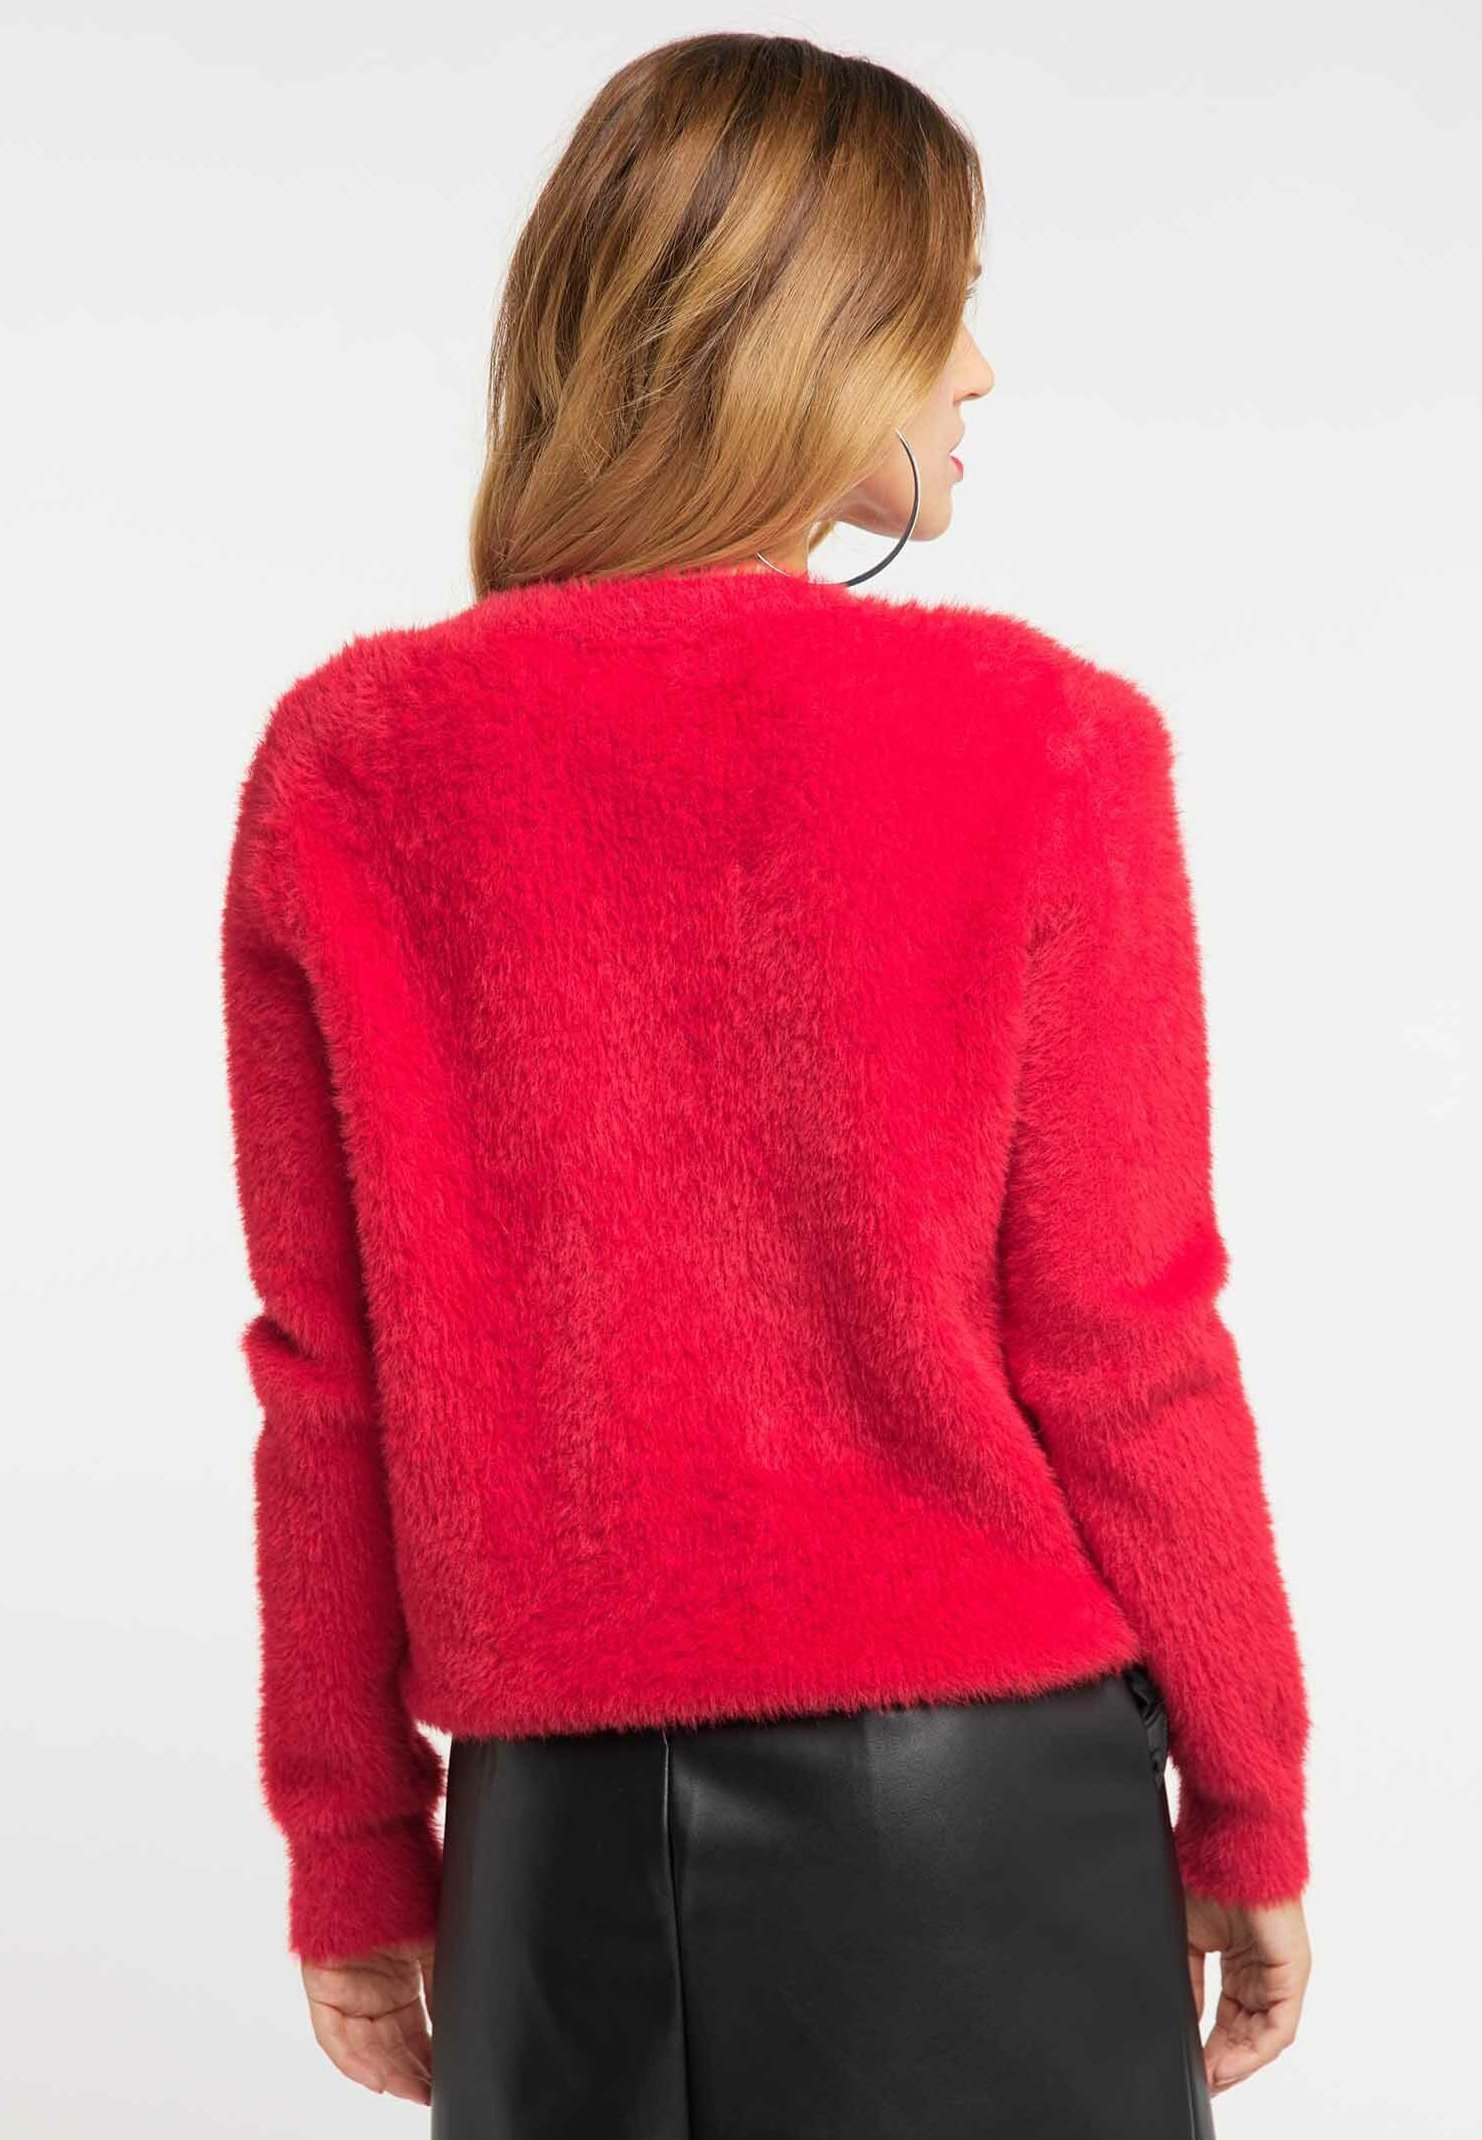 Top-Rated Women's Clothing faina Jumper red MtXzui2s5